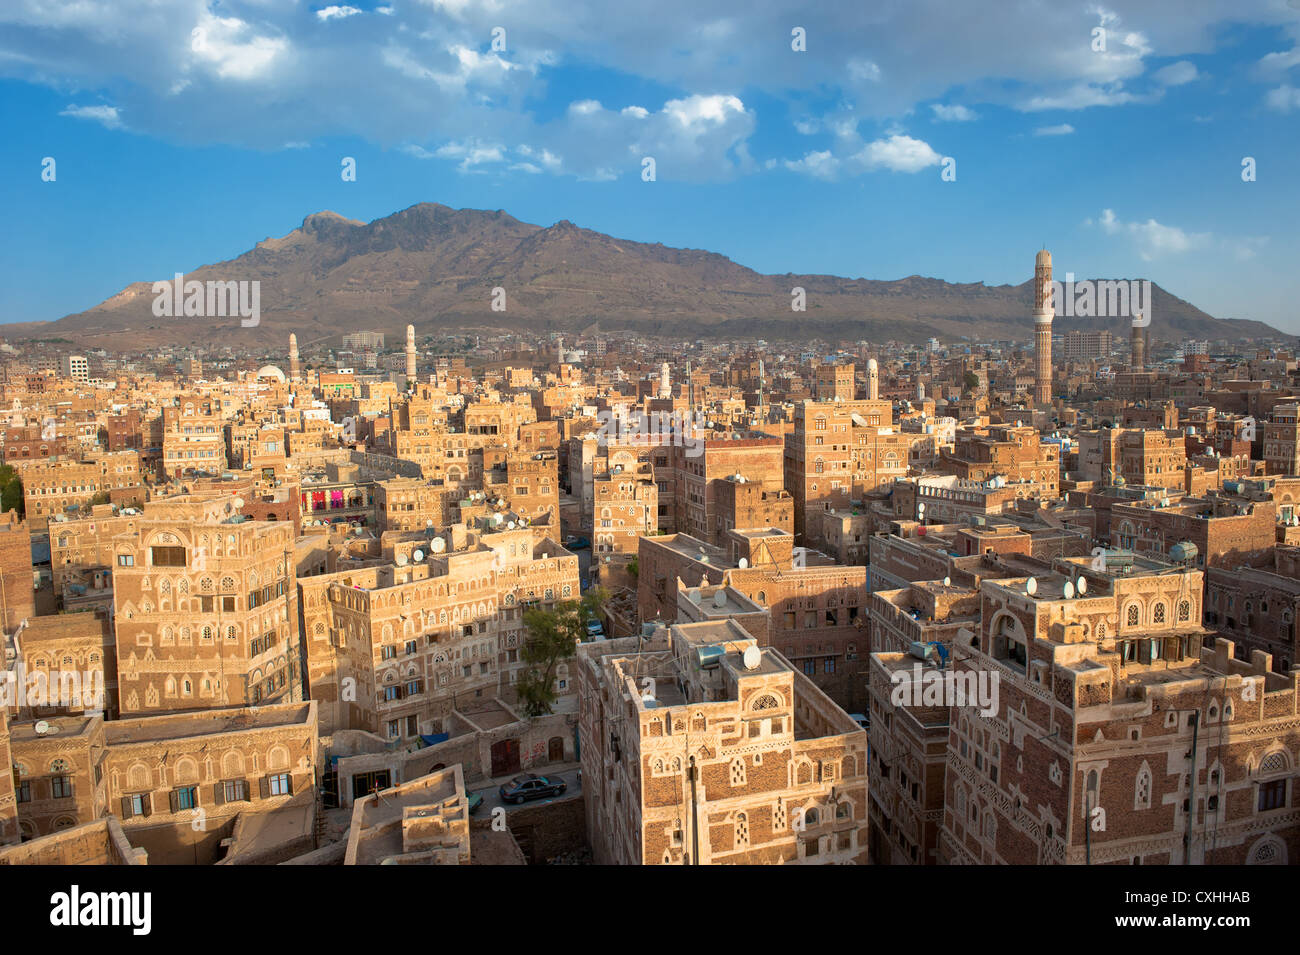 Panorama of Sanaa, Yemen Stock Photo